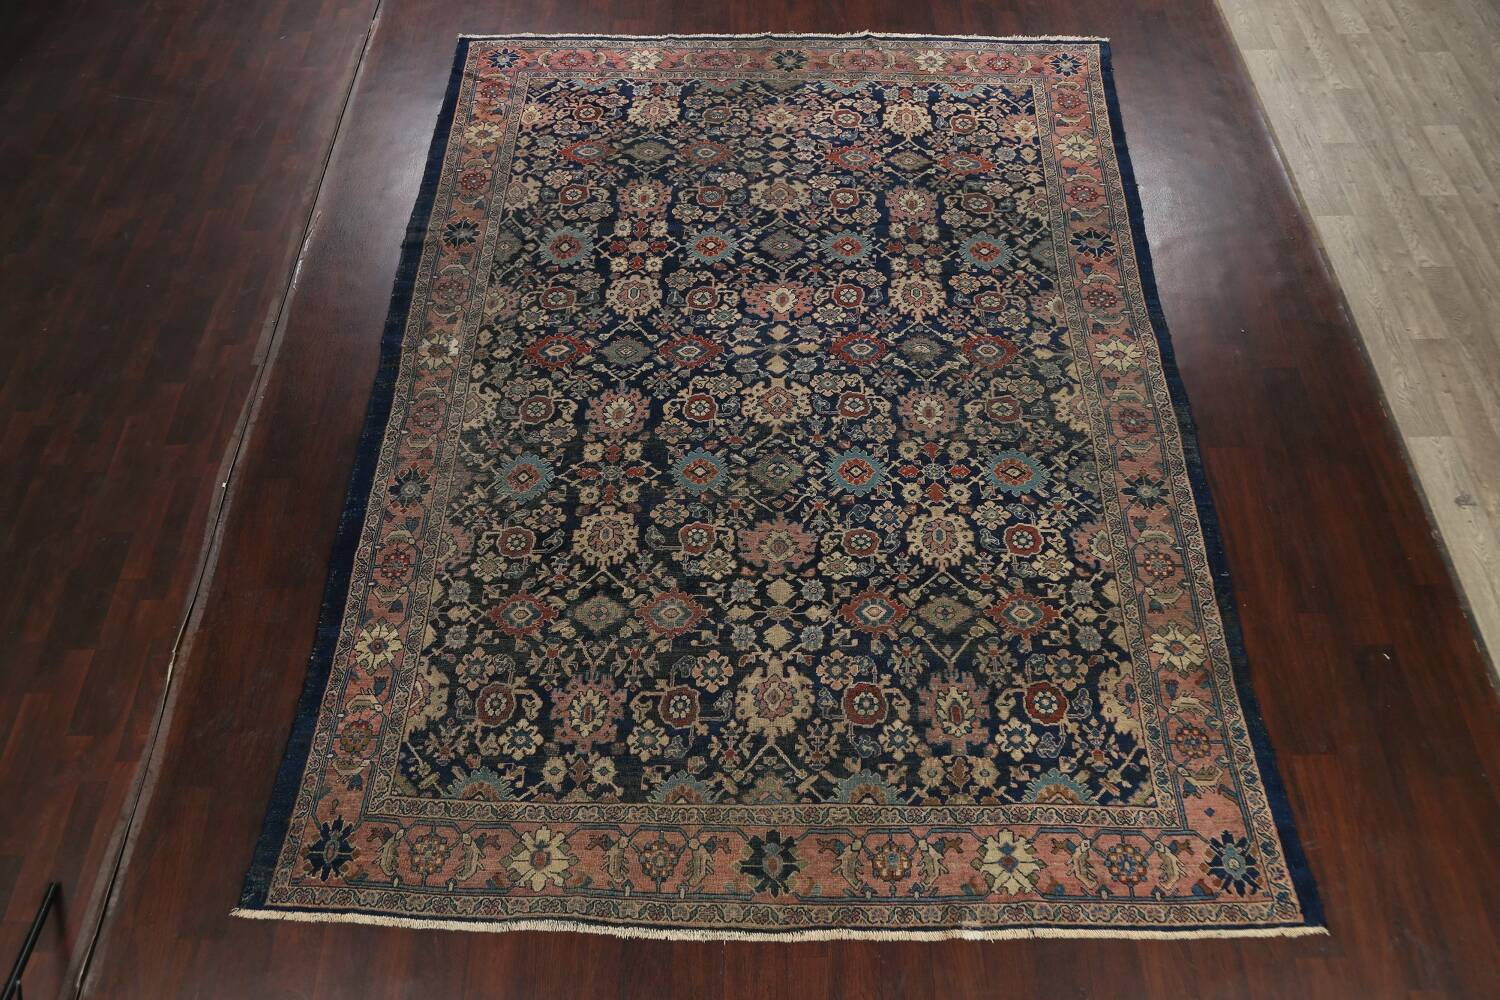 Pre-1900 Antique Vegetable Dye Sultanabad Persian Area Rug 10x13 image 2